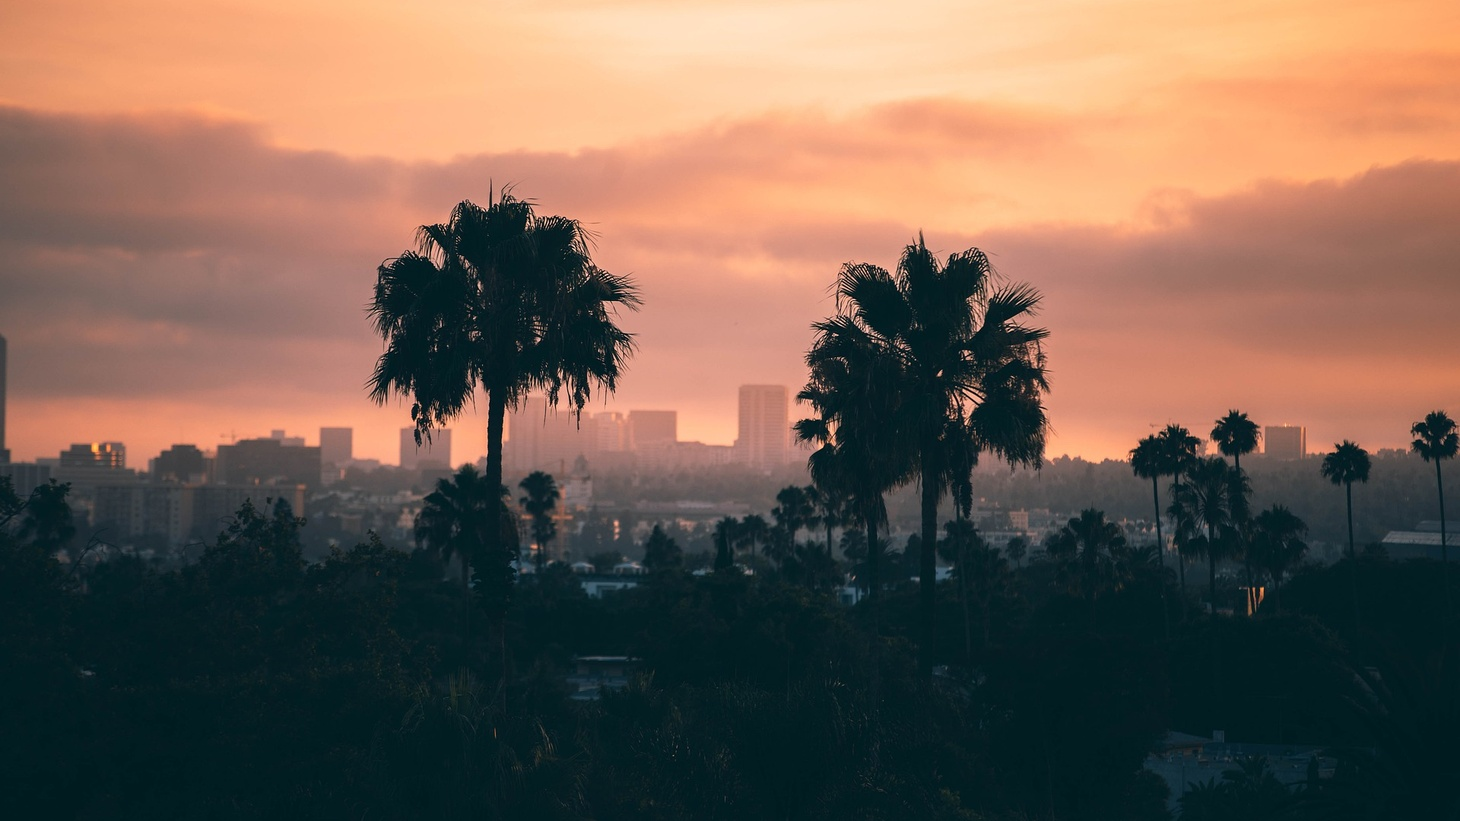 Southern California has recently experienced high temperatures and strong Santa Ana winds.